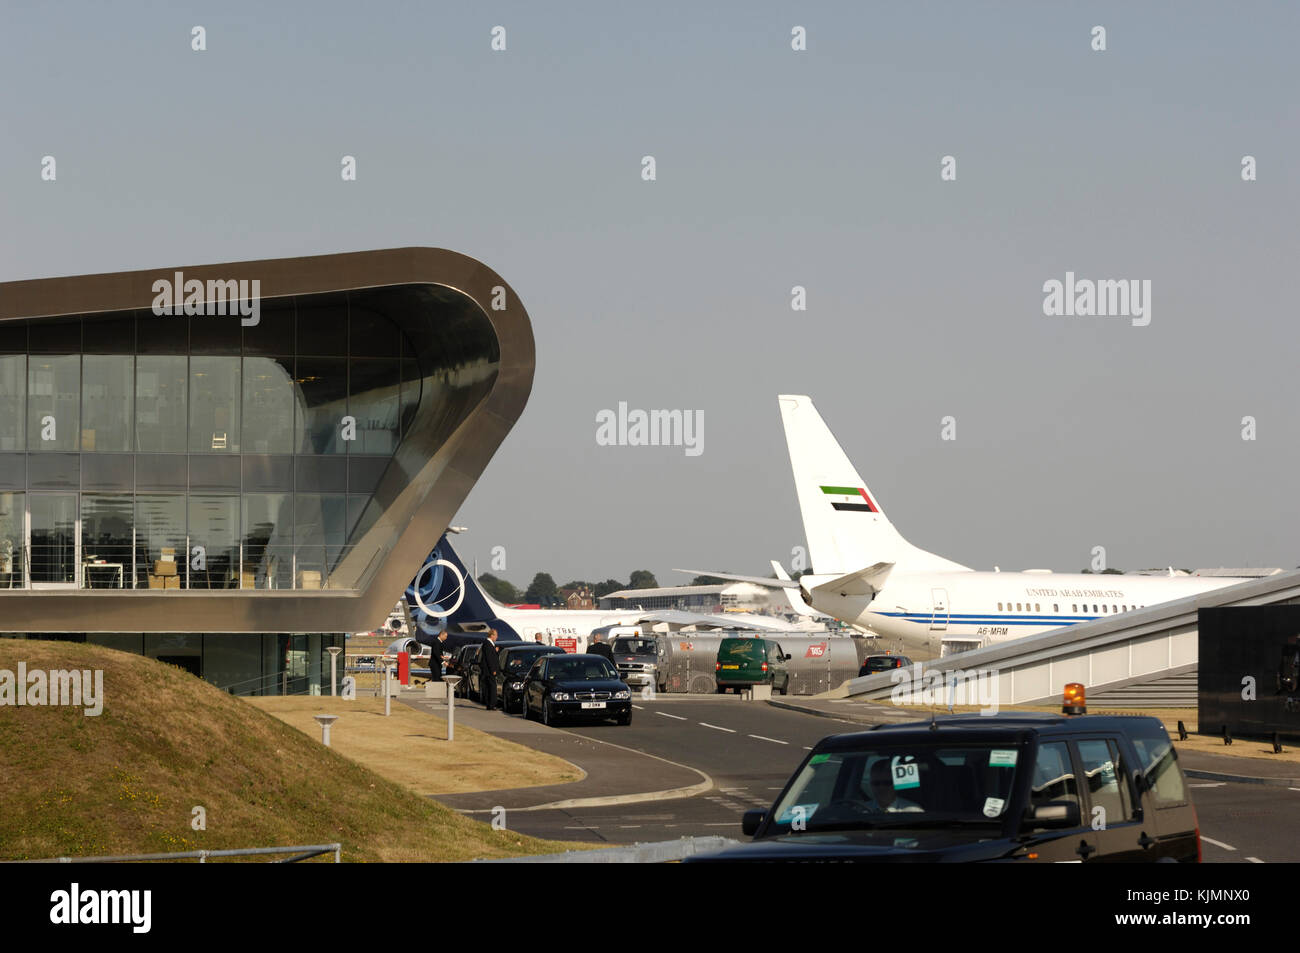 Amiri Flight Boeing 737-800 BBJ, BAE 146-300 and Bombardier Global Express parked, the TAG Aviation terminal and - Stock Image